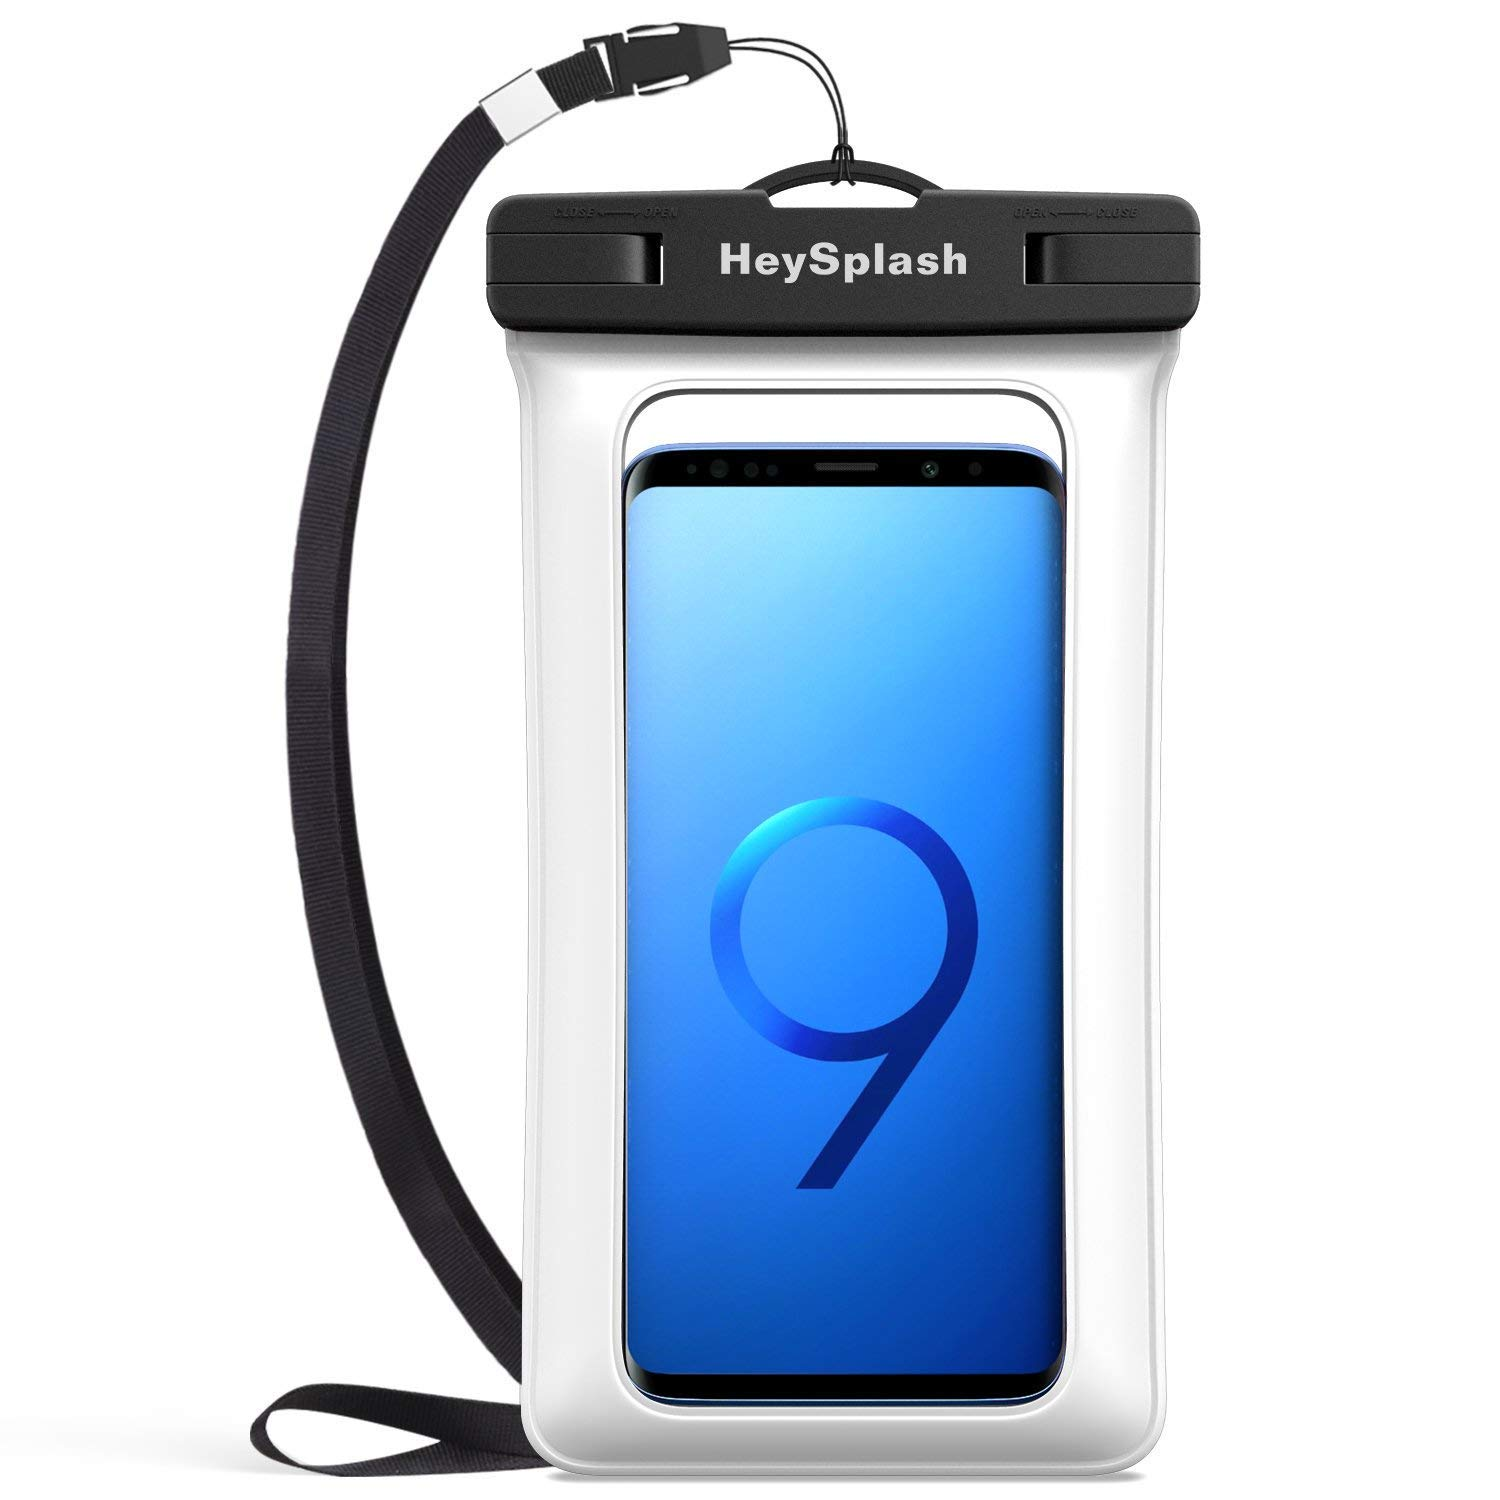 Waterproof Floating Cell Phone Bag, HeySplash Floatable Phone Case Pouch Dry Bag with Lanyard Compatible with iPhone X/Xs/Xr/Xs Max, 8/7/6s Plus, Samsung Galaxy Note 9/8, S9/S8 Plus, S7 Edge, White